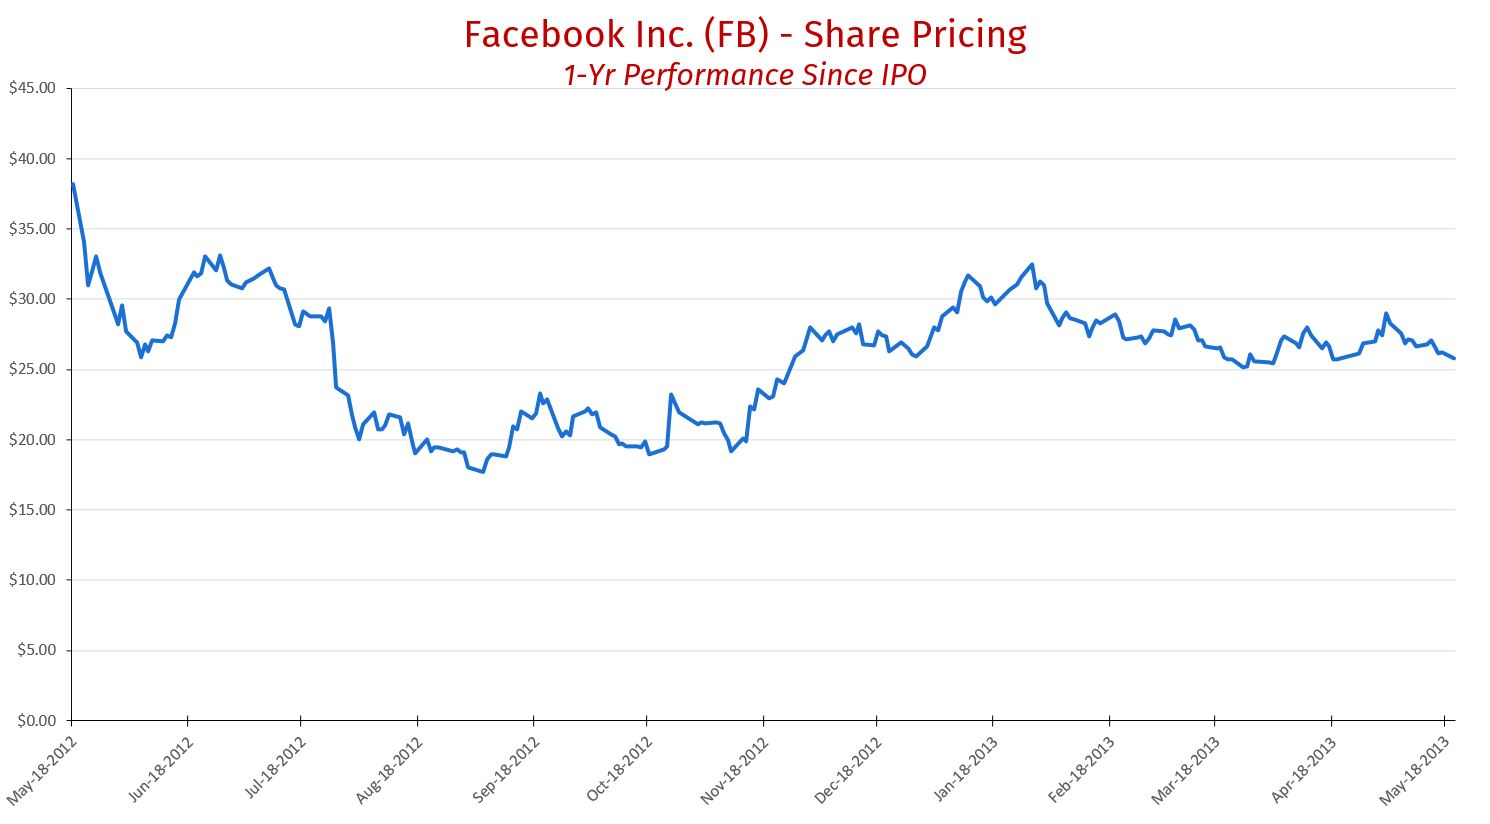 FB Share Pricing